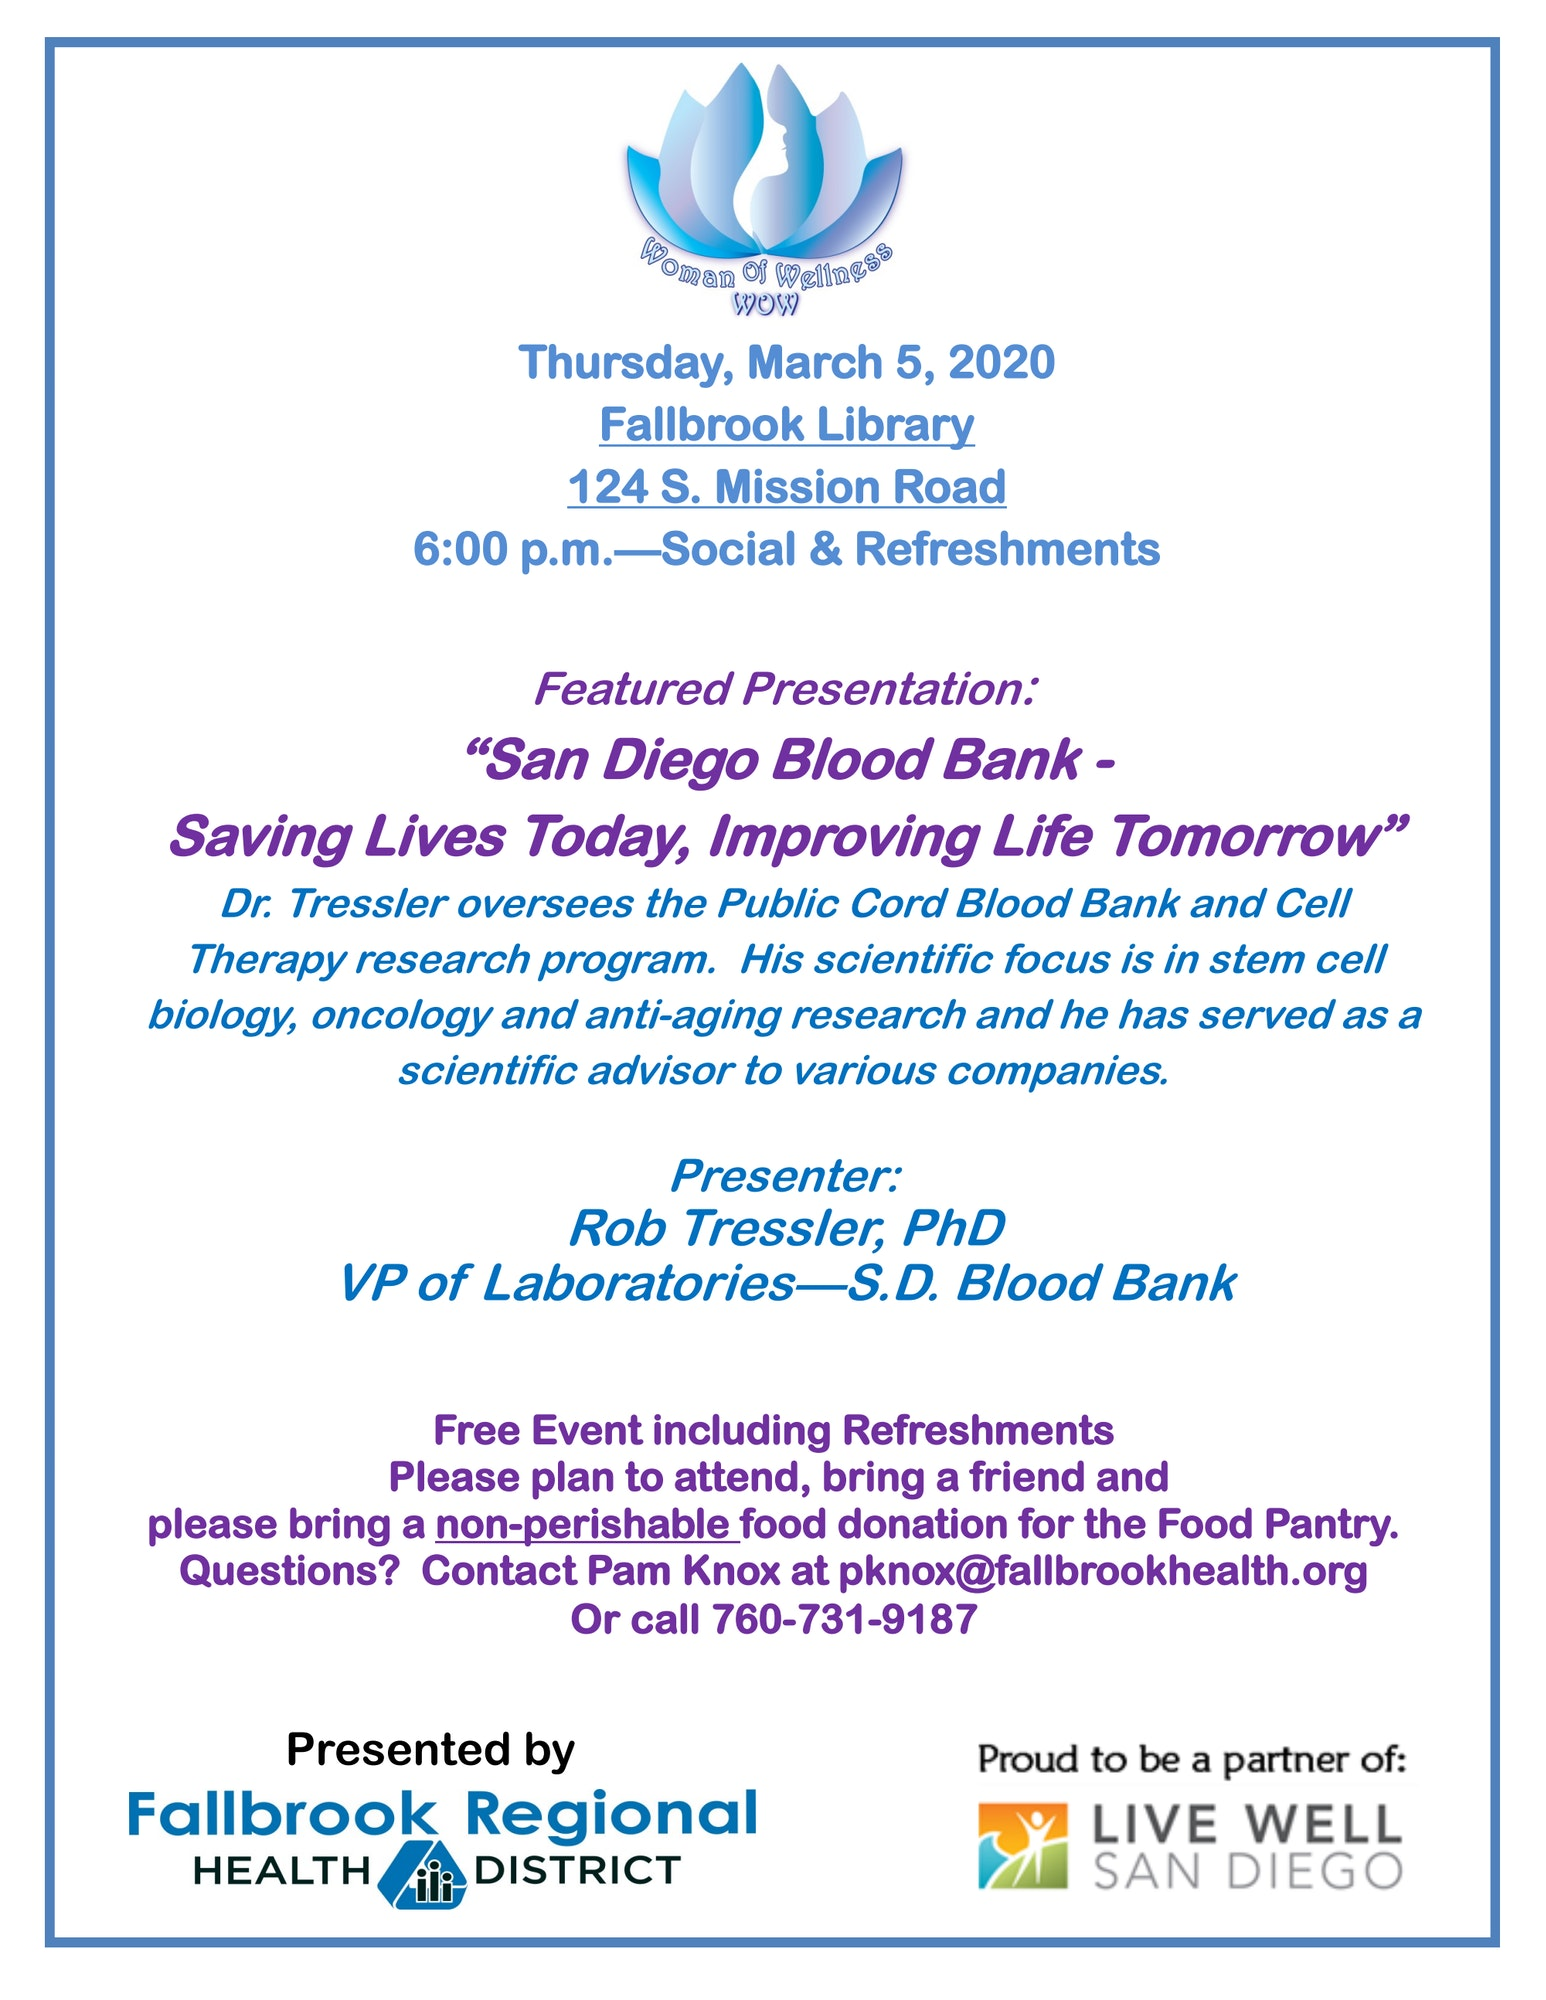 """San Diego Blood Bank -Saving Lives Today, Improving Life Tomorrow"" by Rob Tressler, PhD, VP of Laboratories—S.D. Blood Bank at the Fallbrook Library, 124 S. Mission Rd. at 6:00pm"